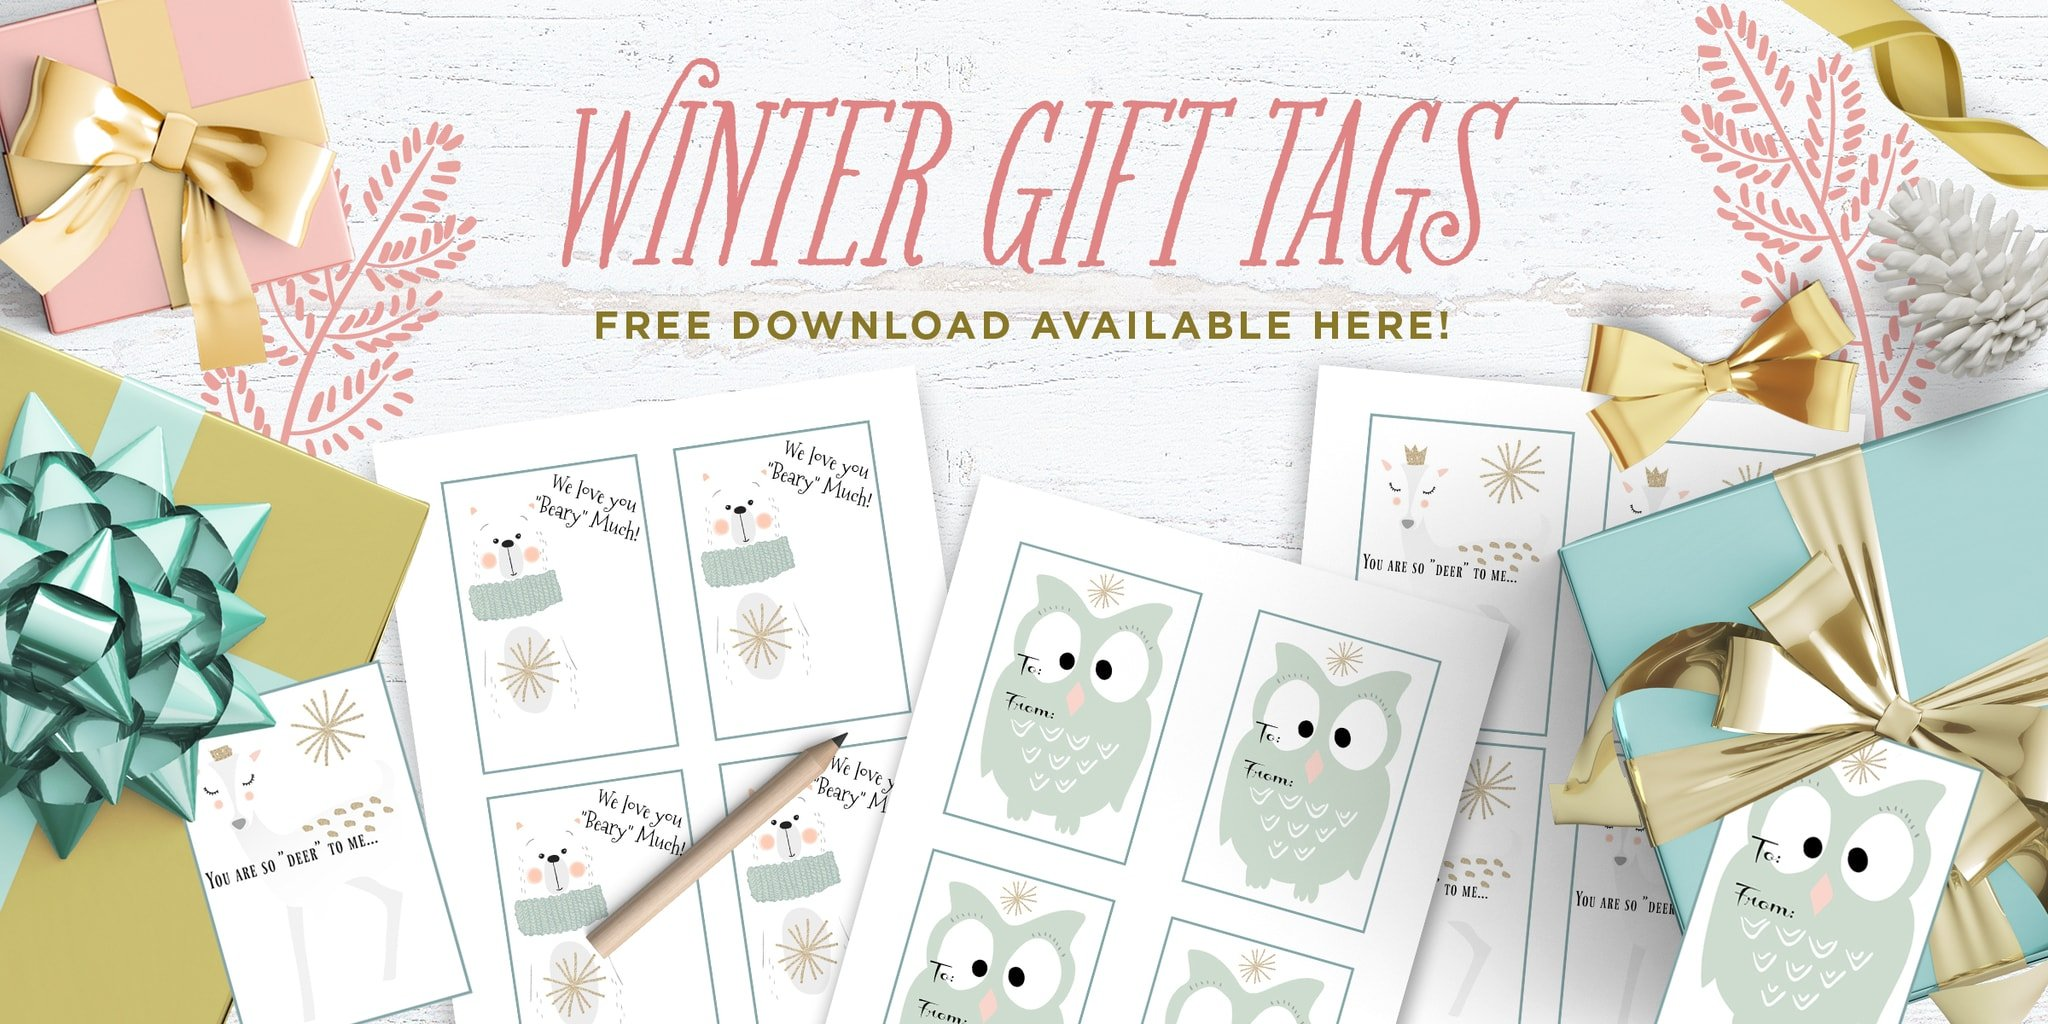 Free Winter Gift Tags This Little Home of Mine